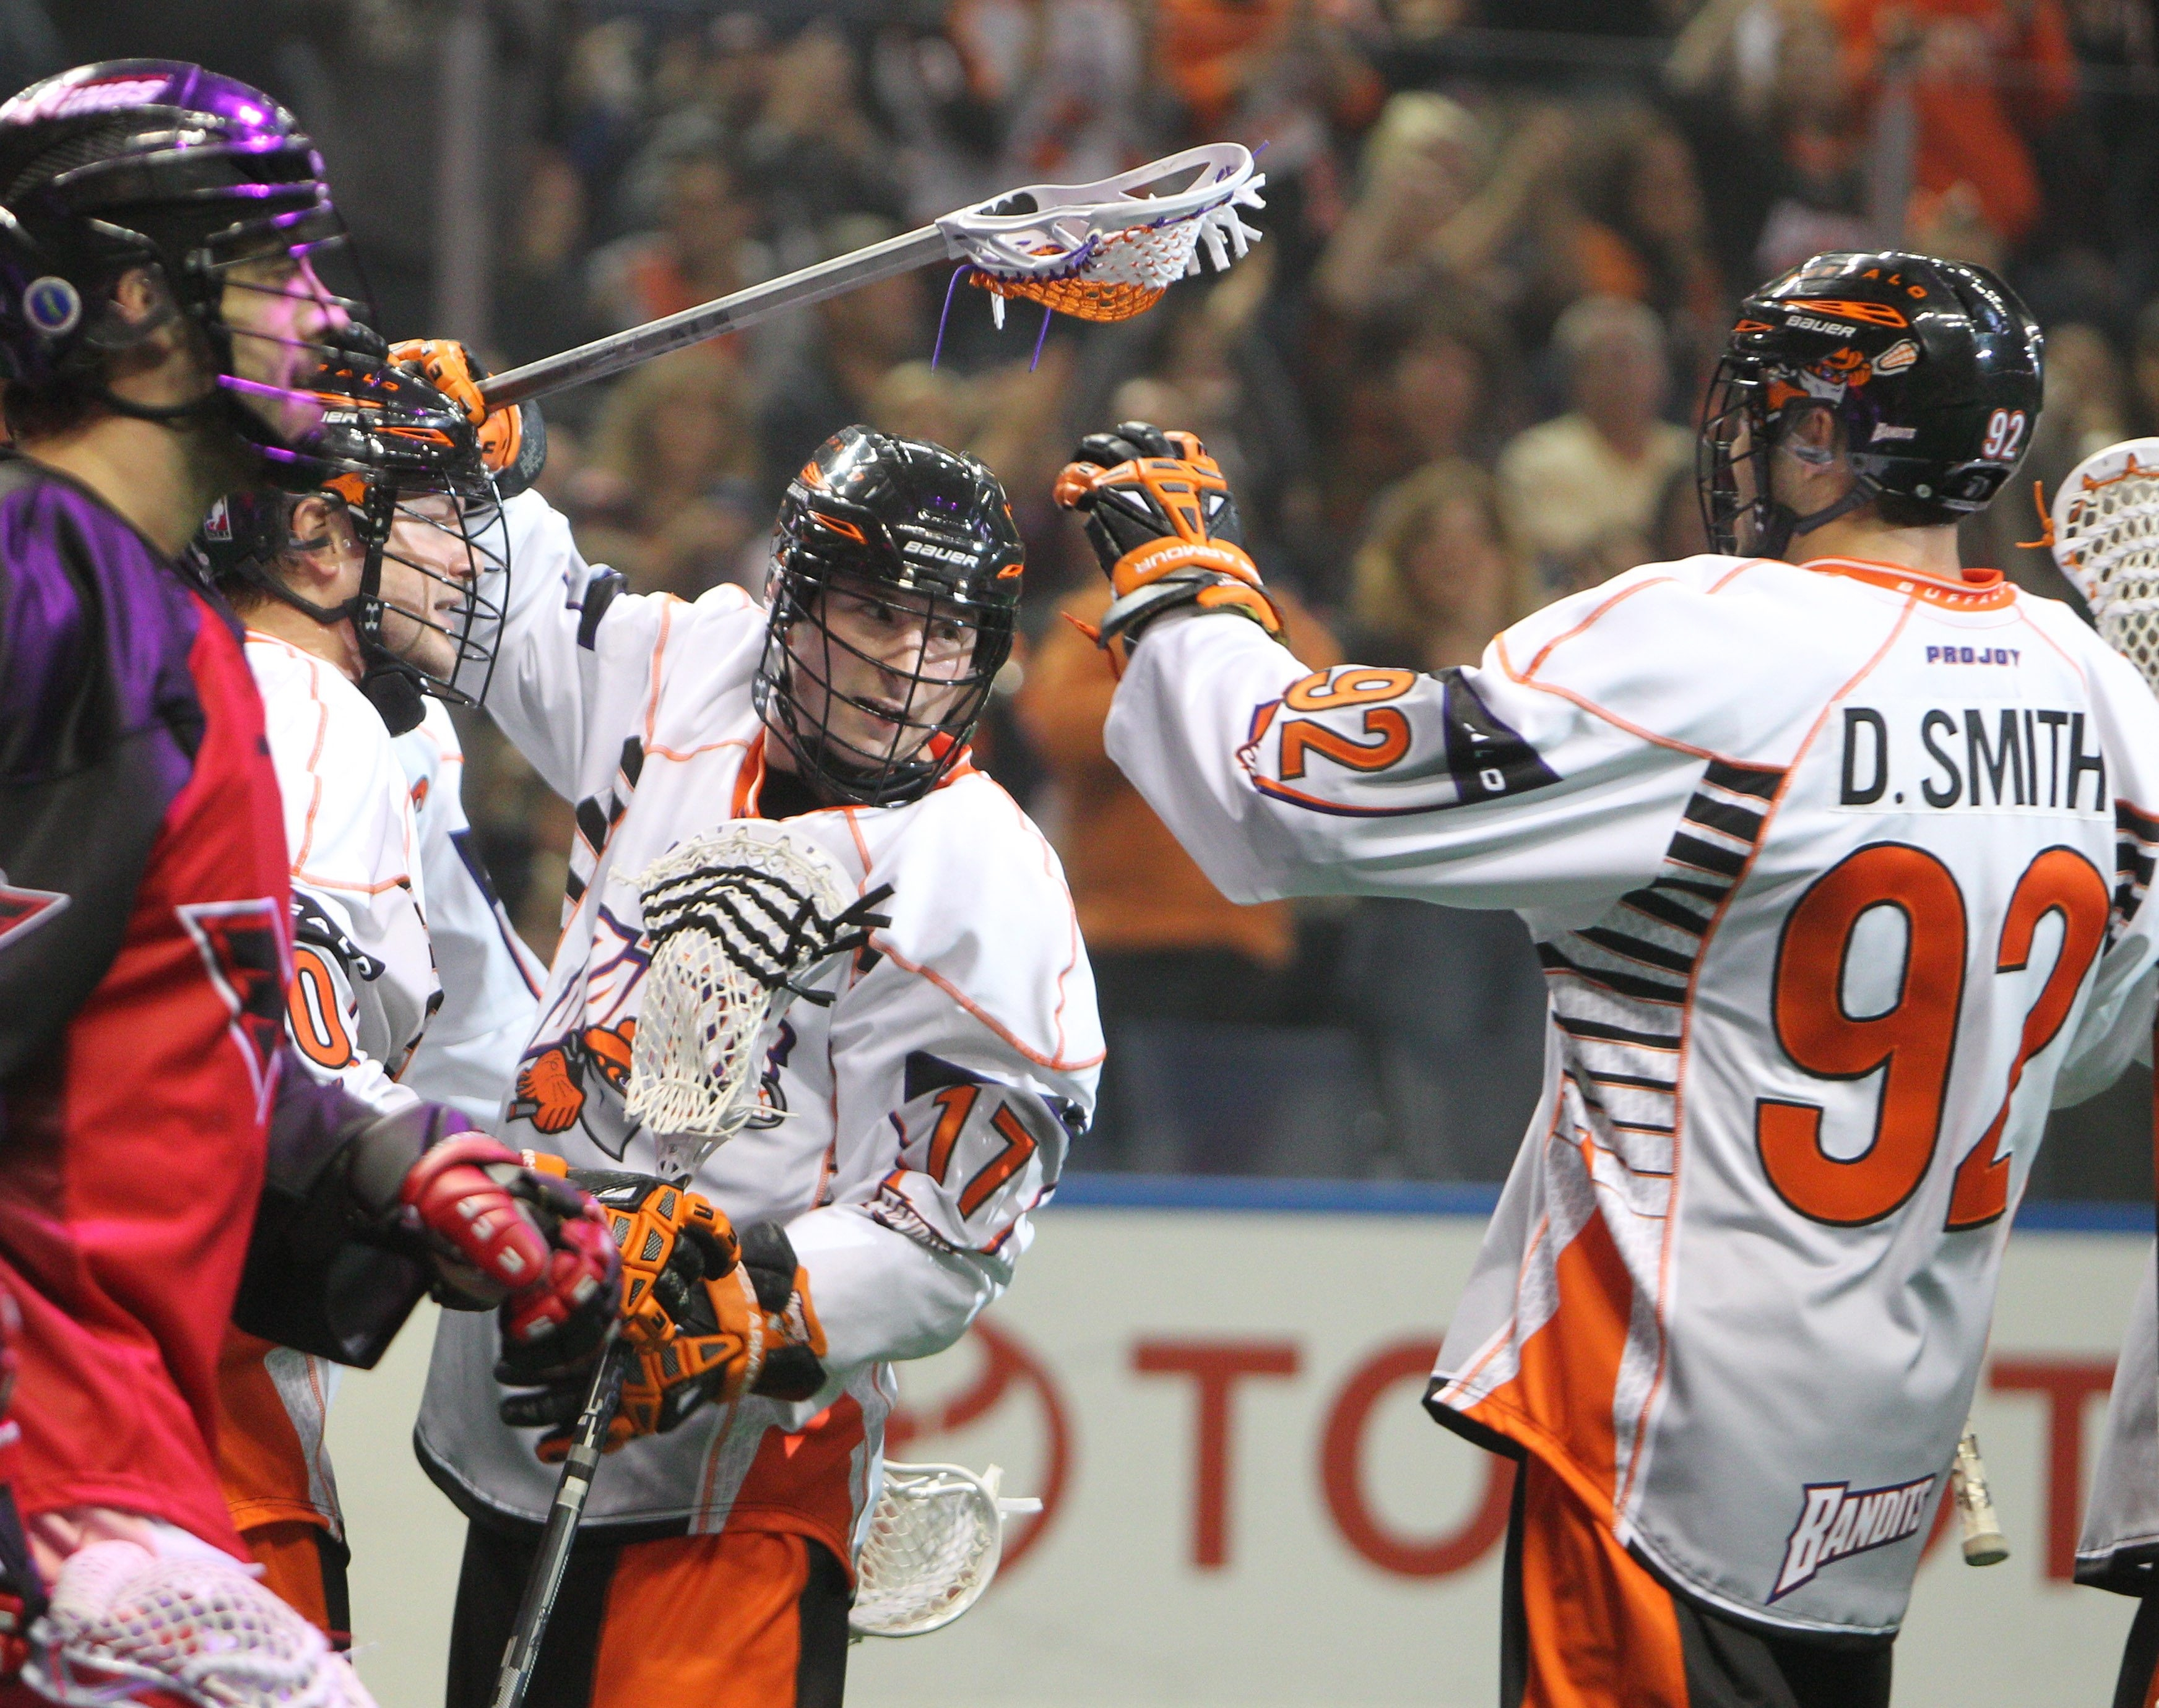 Ryan Benesch celebrates after scoring the Bandits' first goal. Benesch, who played for Minnesota last season, had two goals in his Buffalo debut.